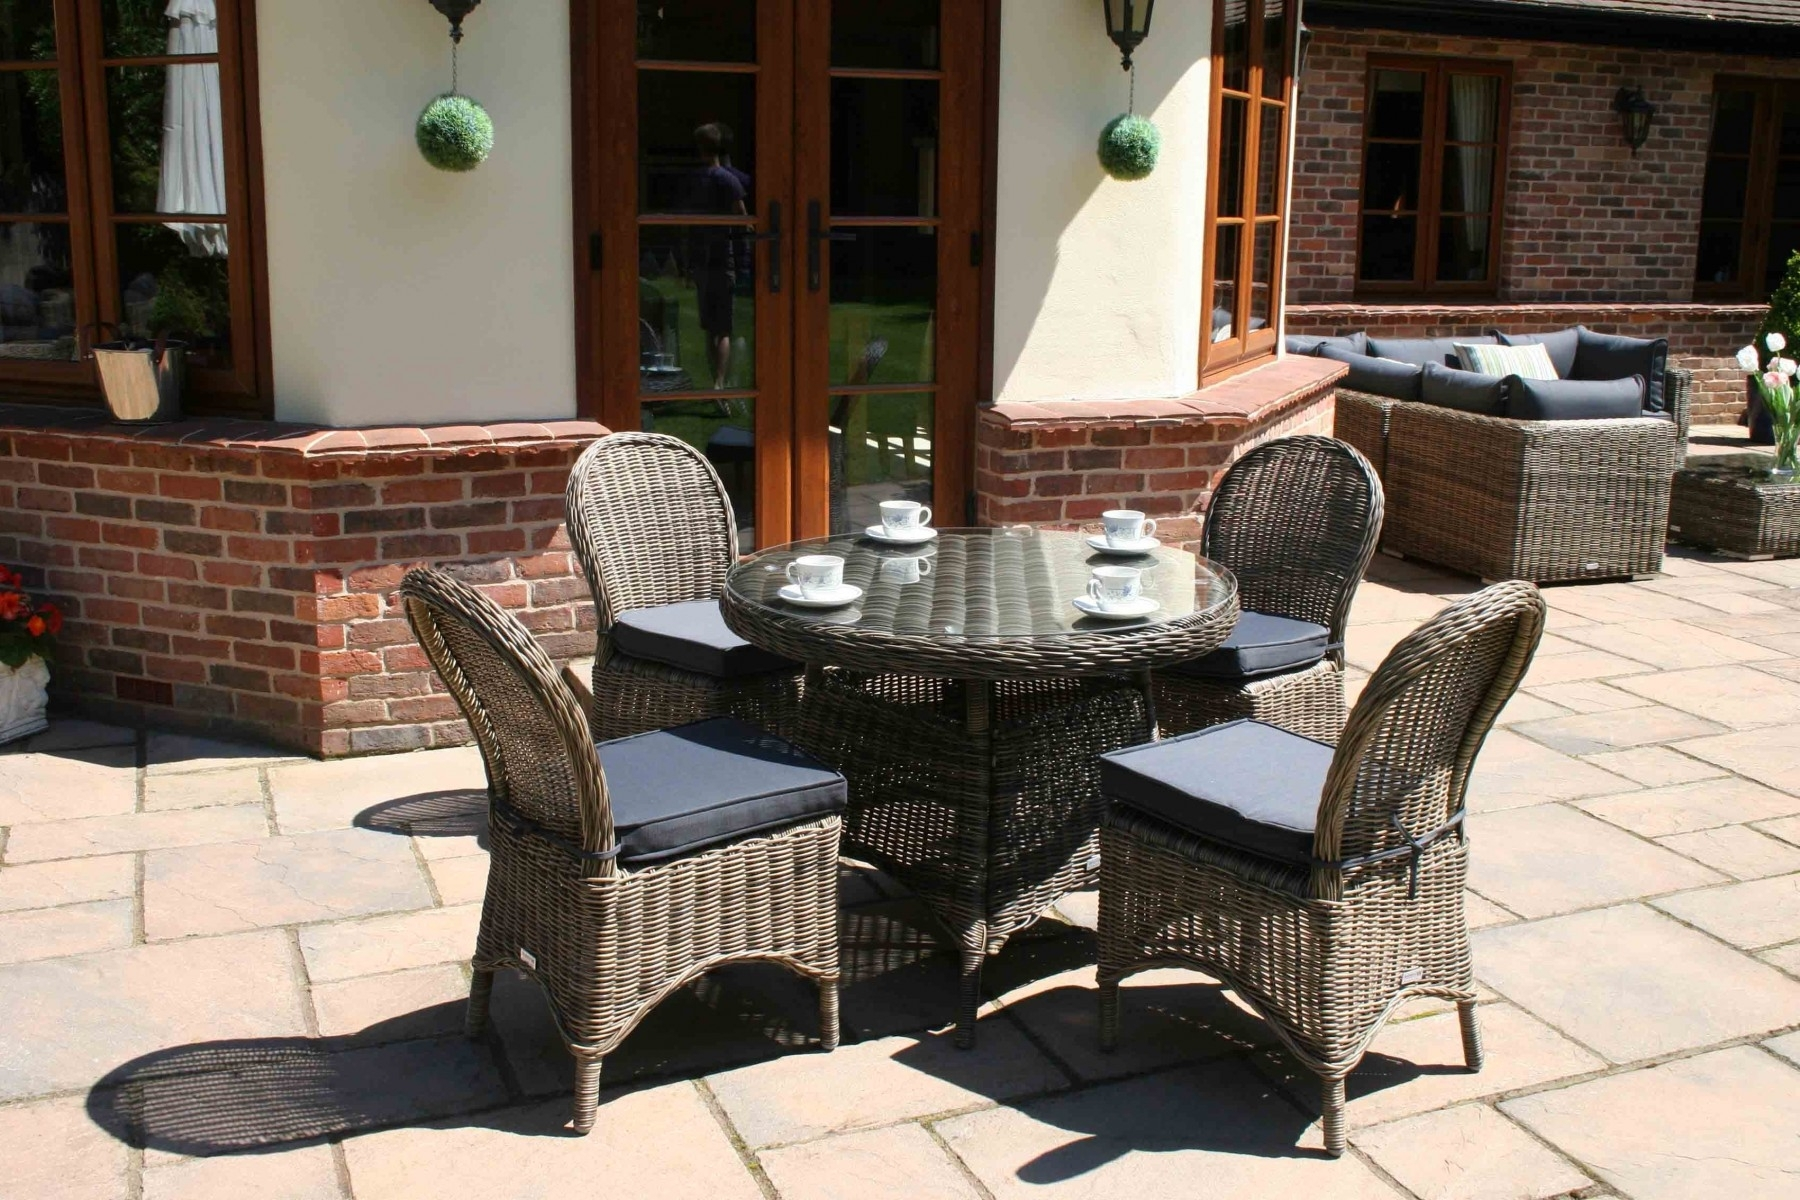 Mayfair Dining Tables In Latest 100Cm Mayfair Round Dining Table With 4 Dining Chairs – Garden (View 9 of 25)